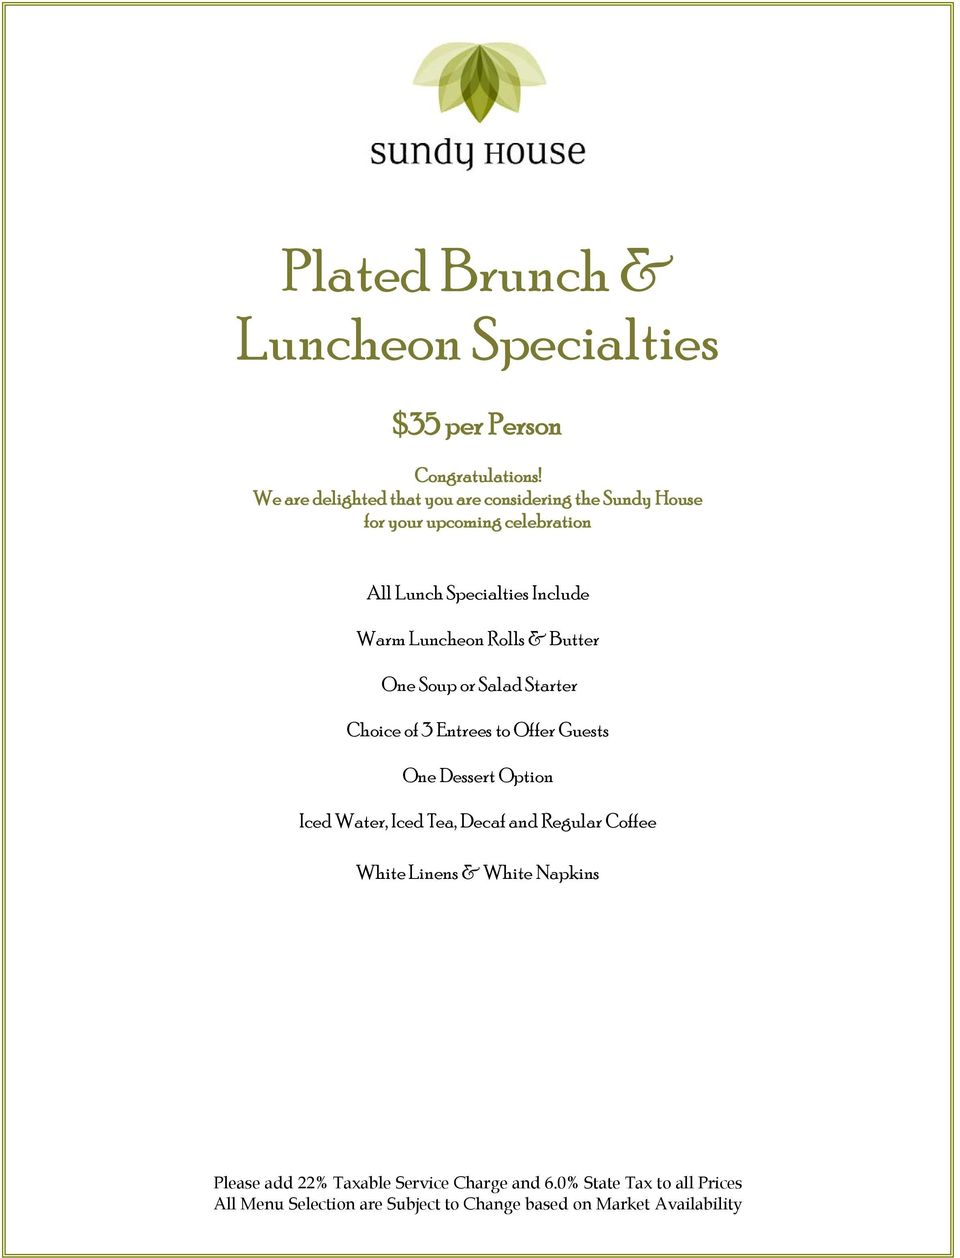 Lunch Specialties Include Warm Luncheon Rolls & Butter One Soup or Salad Starter Choice of 3